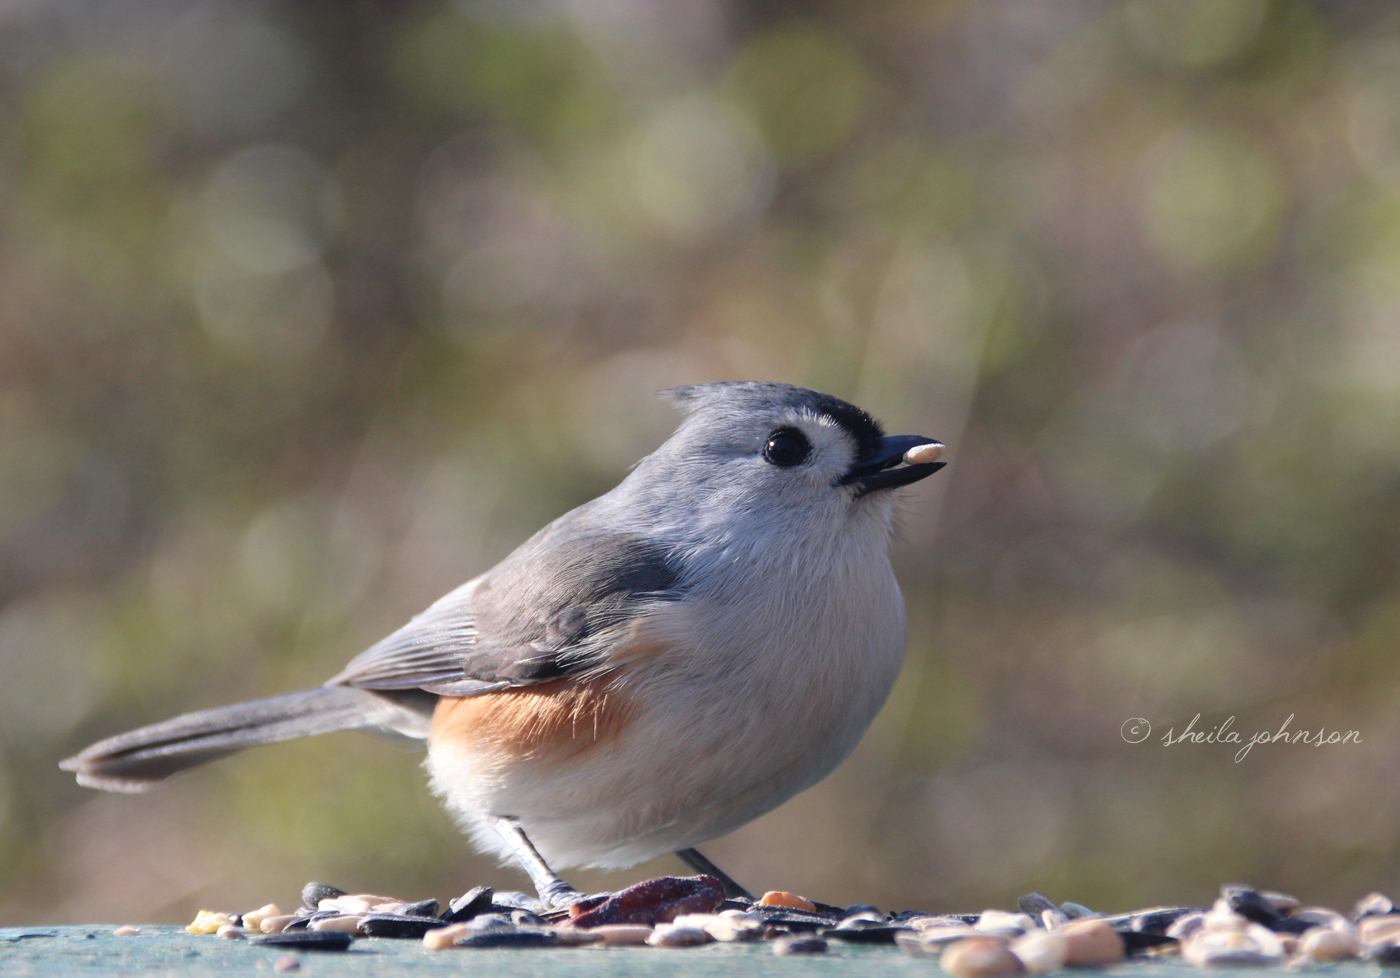 It's Treat Time For This Little Maryland Tufted Titmouse. Though Common In The Northeast, We See Them Only In Winter In South Florida.